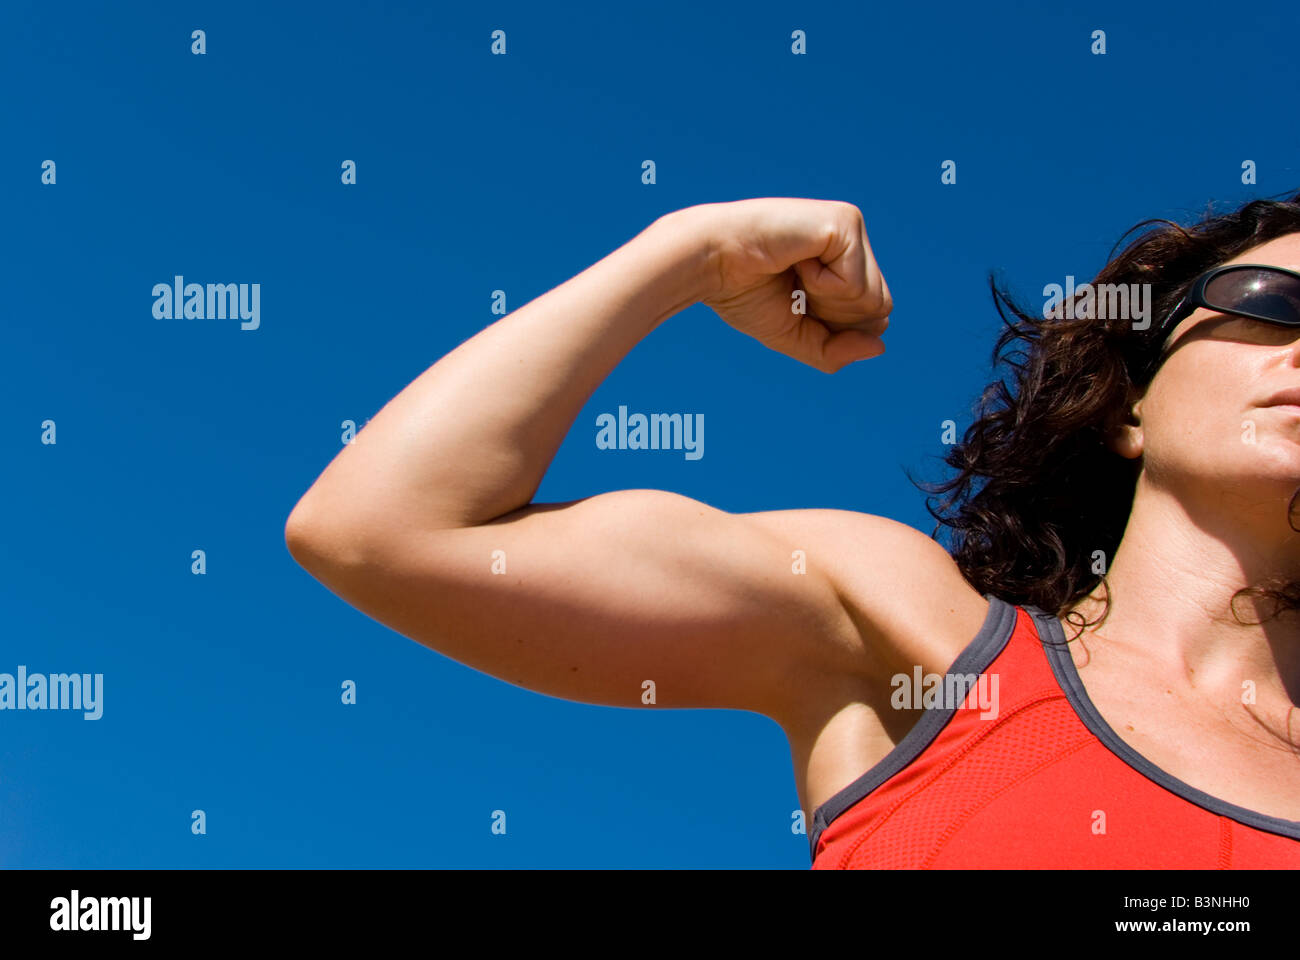 Model Released sporty female flexing biceps against a clear blue sky Stock Photo